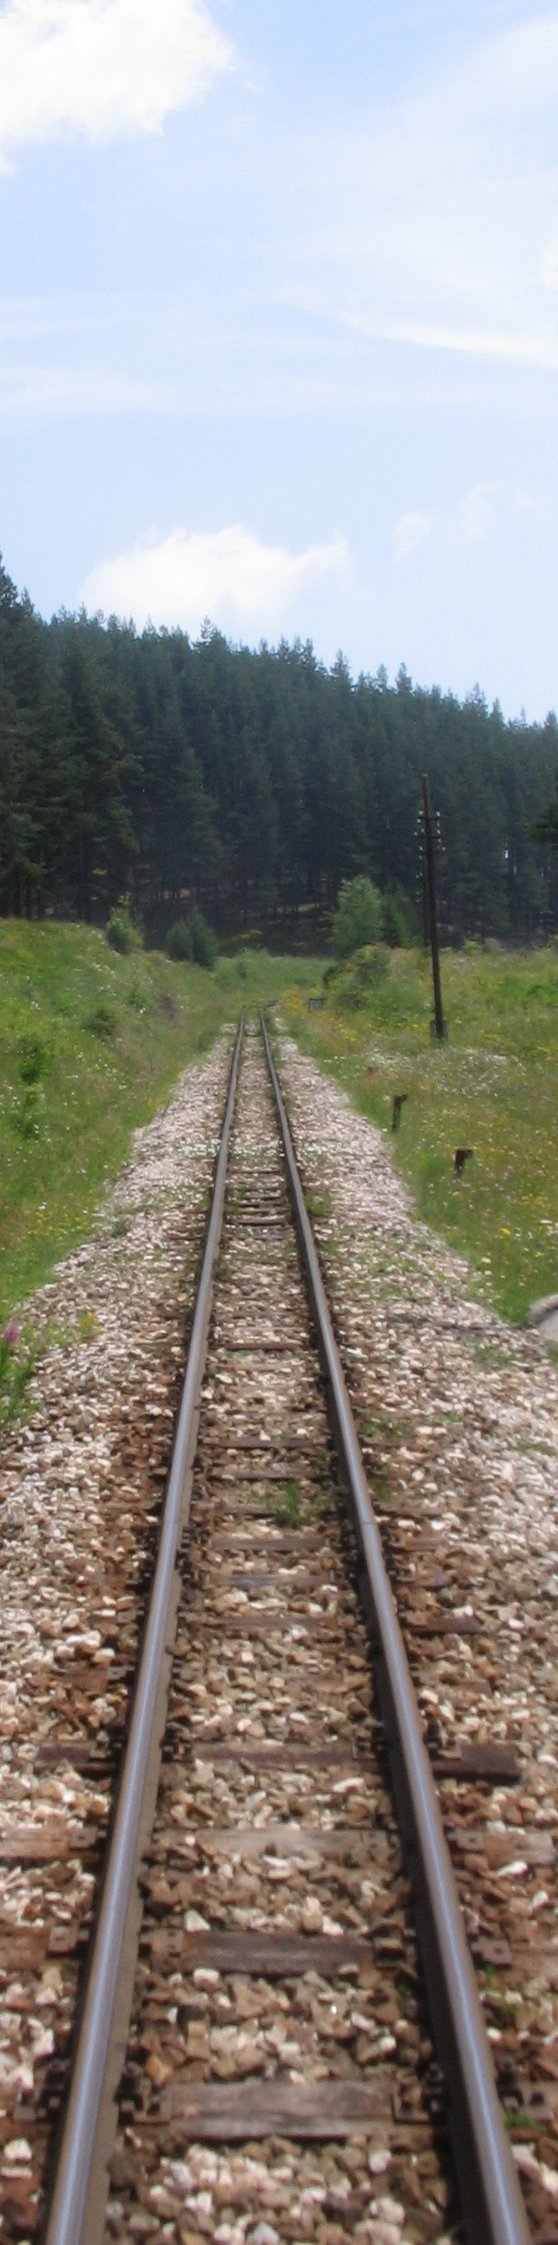 Railways Had Come Late To Bulgaria And The Initial 39 Km Of The Narrow Gauge Line From Septemvri As Far As Velingrad Has Just Completed Its 80th Year